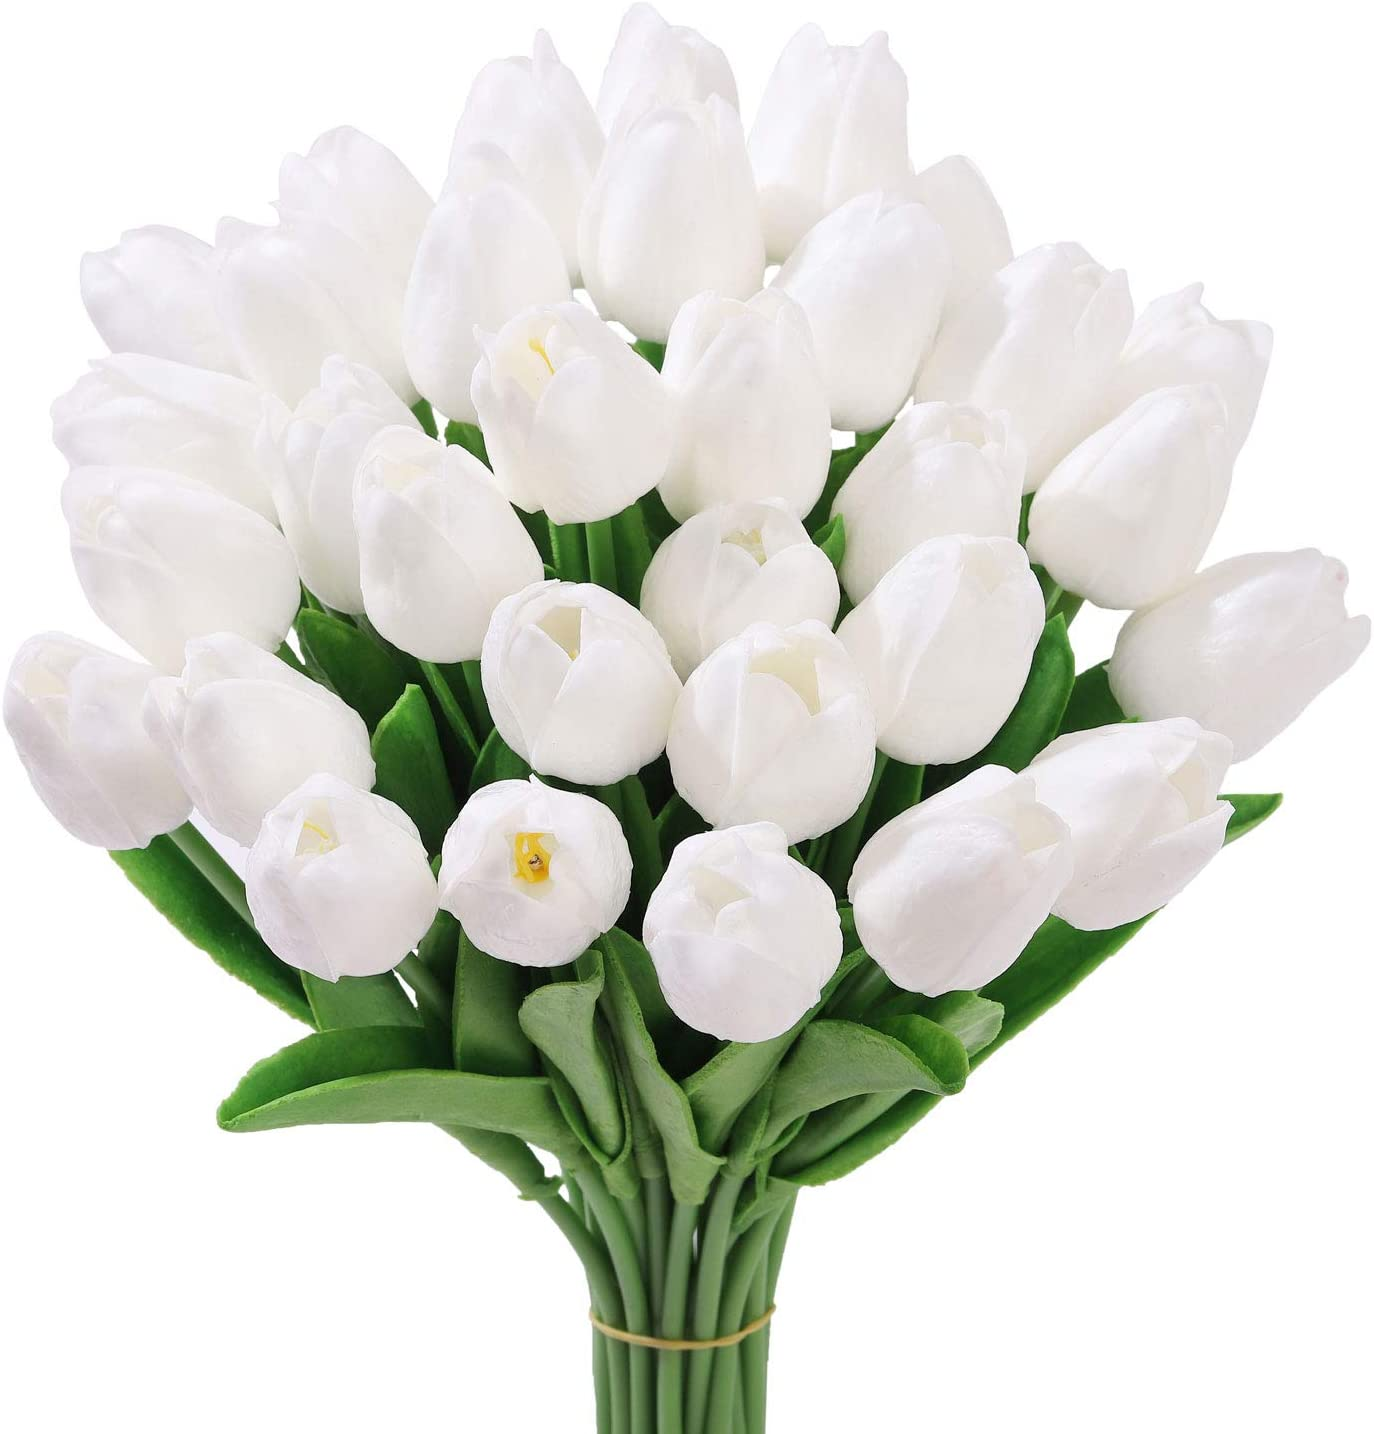 Qiddo 20 Pcs Artificial Flowers Real Touch Tulips in White Wedding Bouquets Flowers Fake Tulips PU Plants Flowers Arrangement Bouquet Home Room DIY Centerpiece Party Wedding Decor(White)